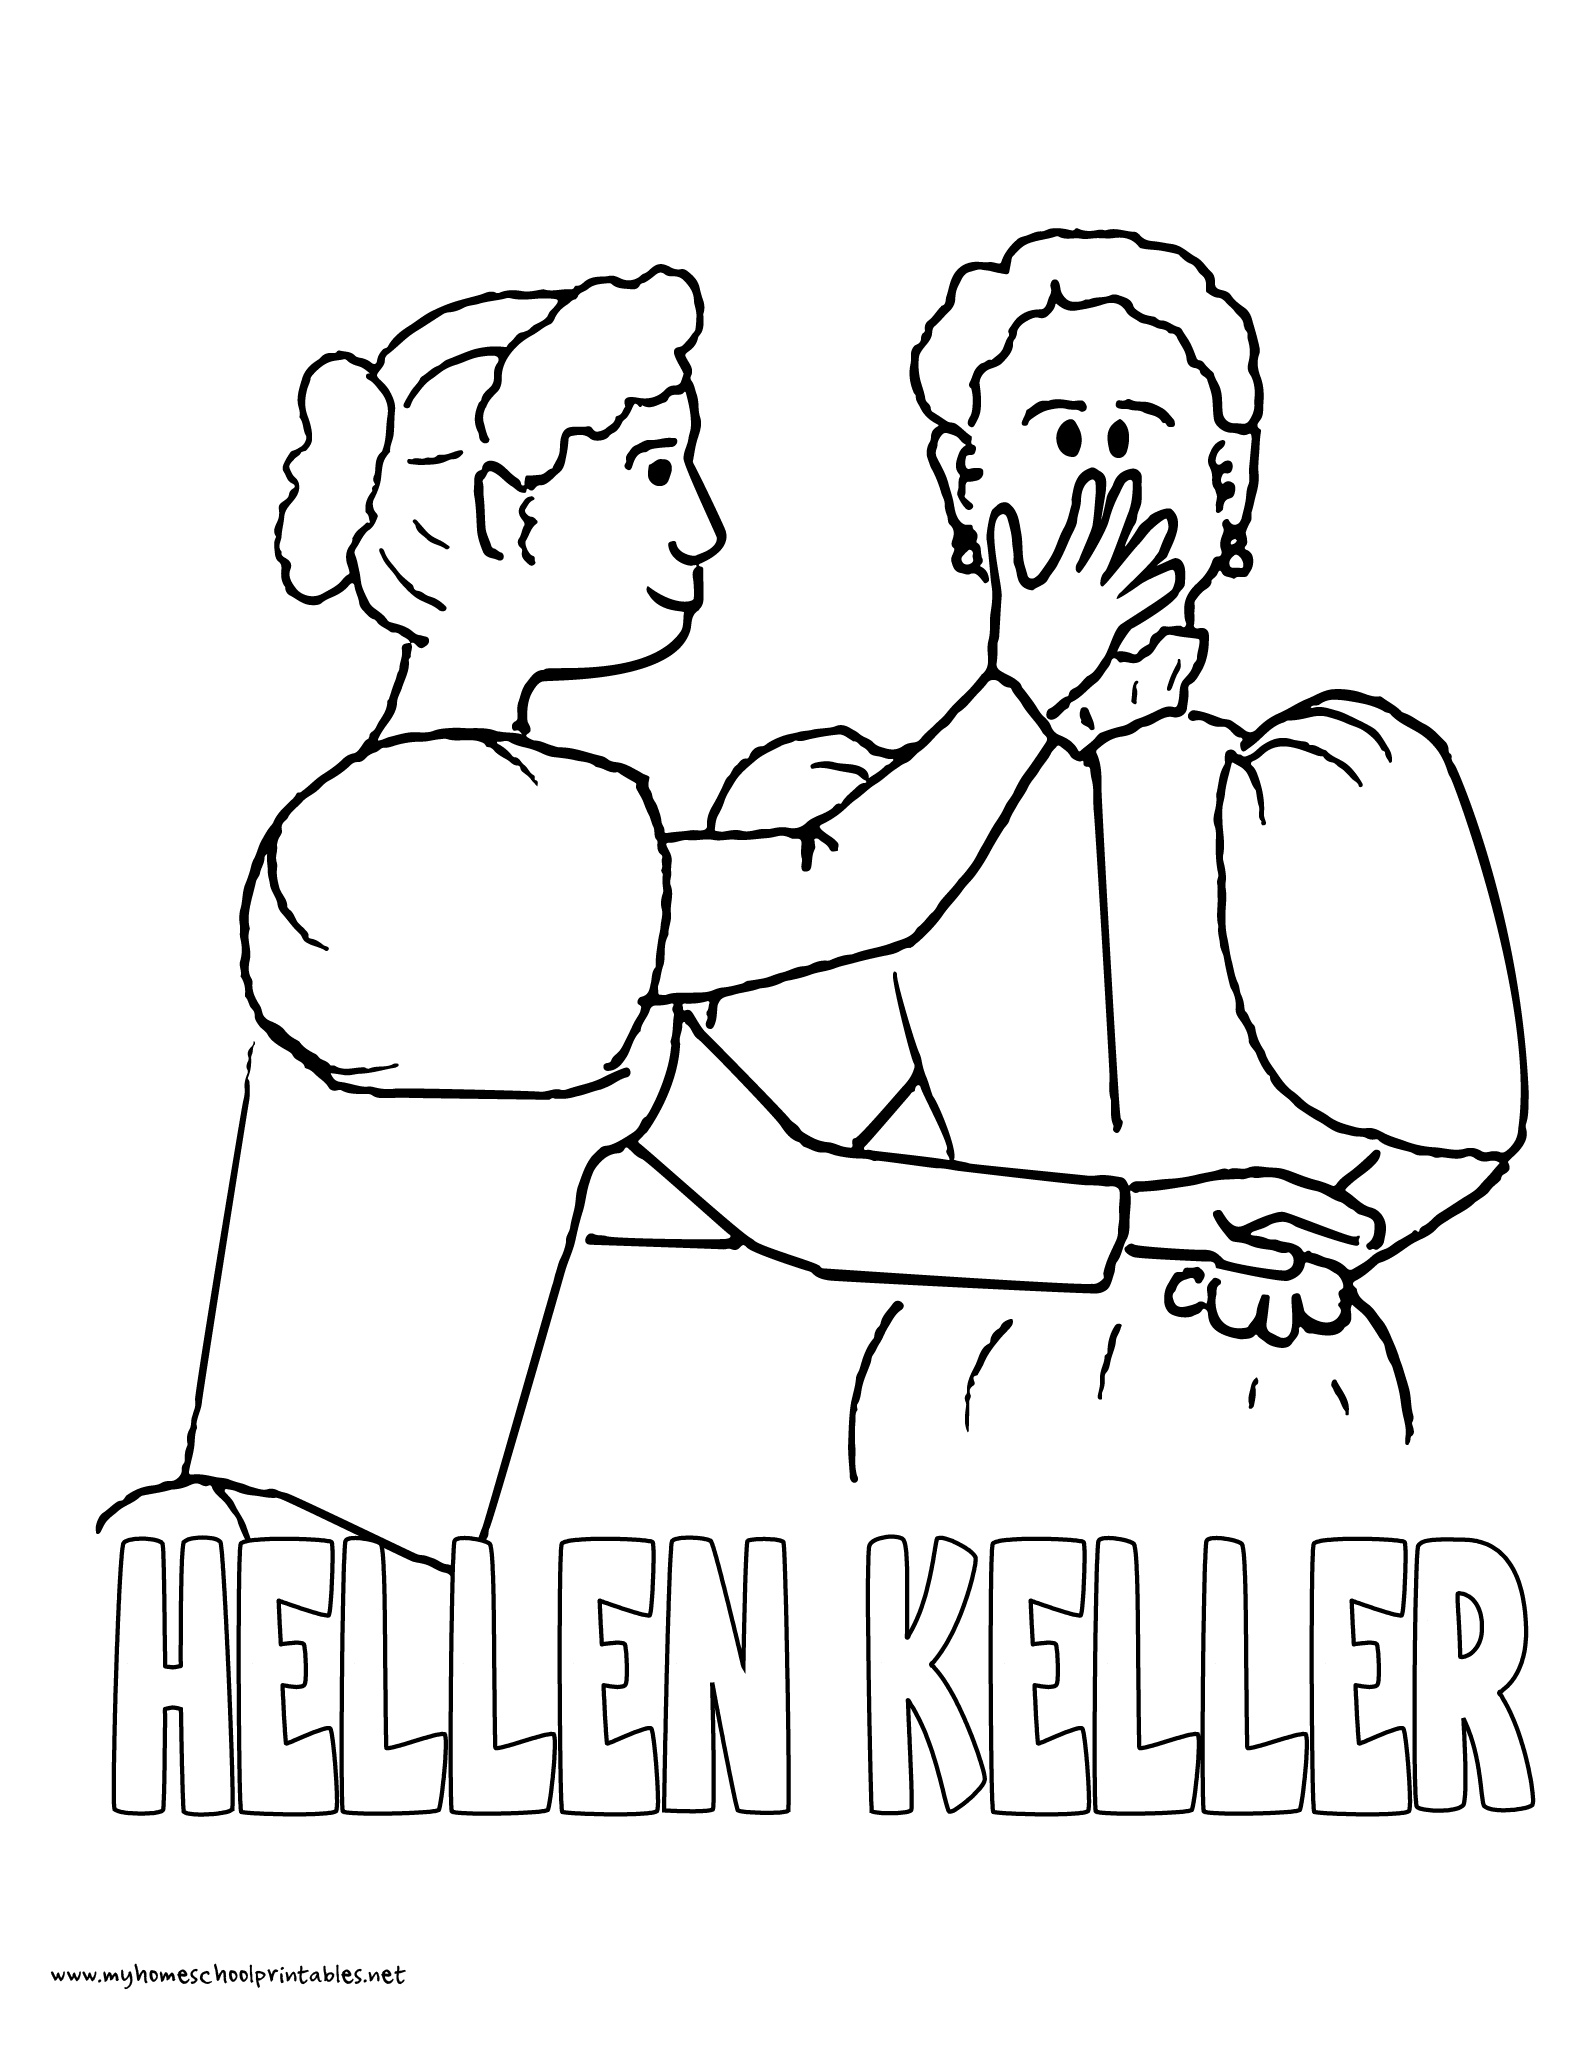 World History Coloring Pages Printables Helen Keller Ann Sullivan Helen Keller Coloring Page For